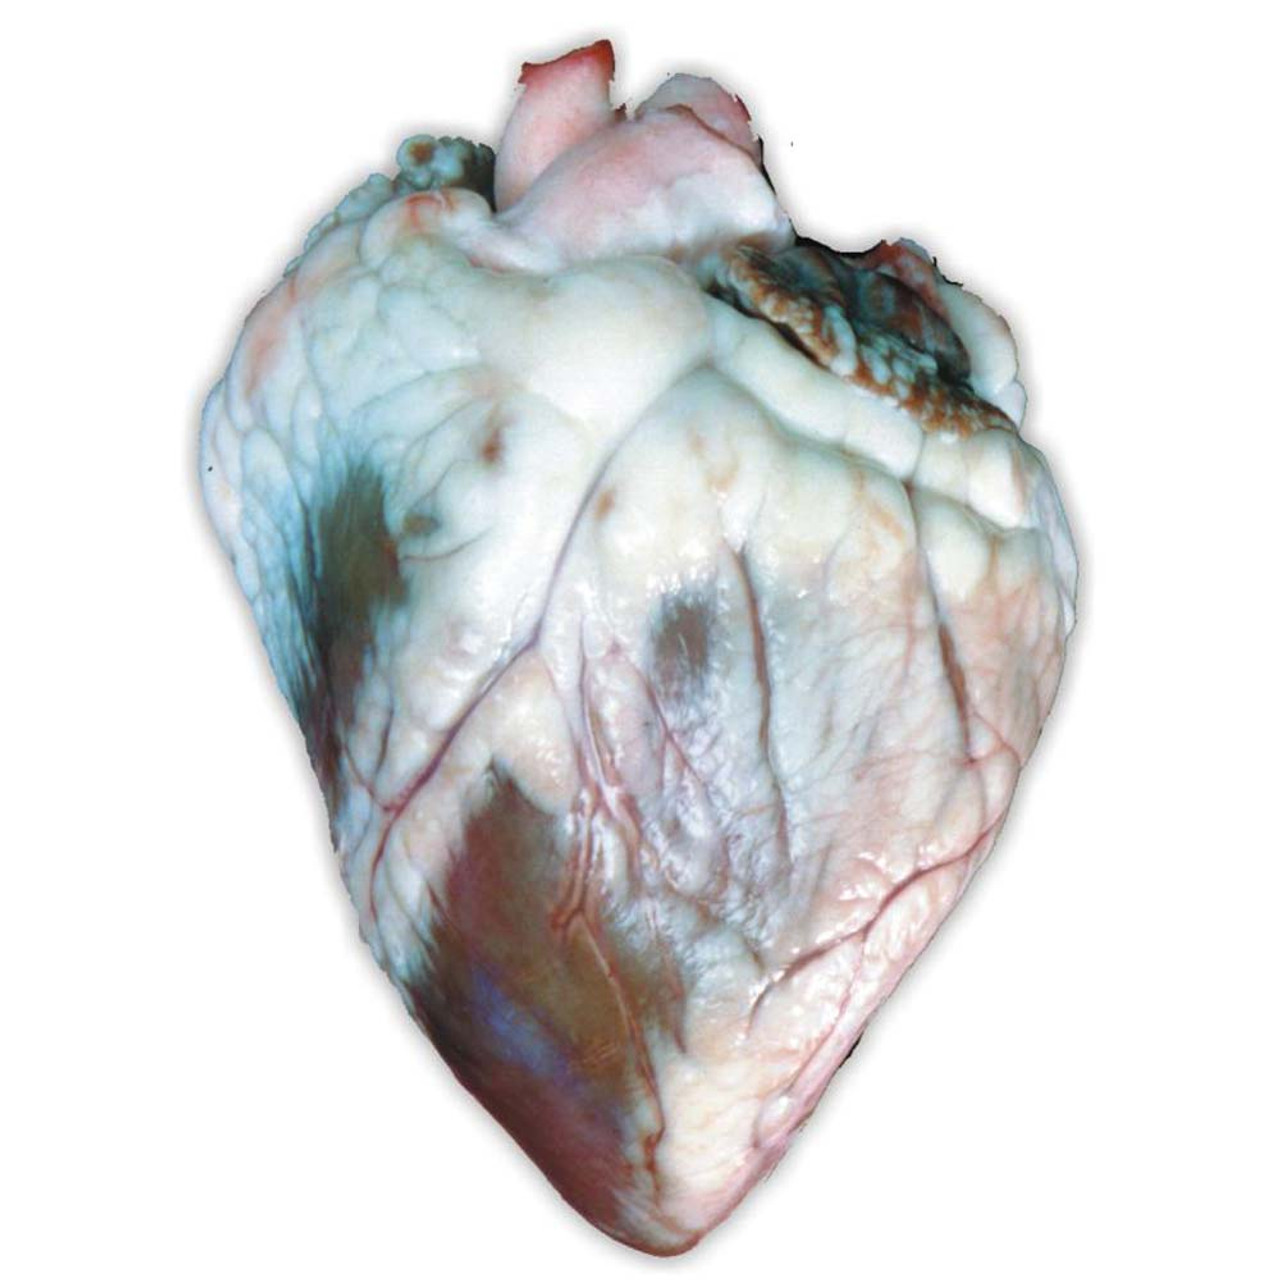 Preserved Sheep Heart Dissection Specimen